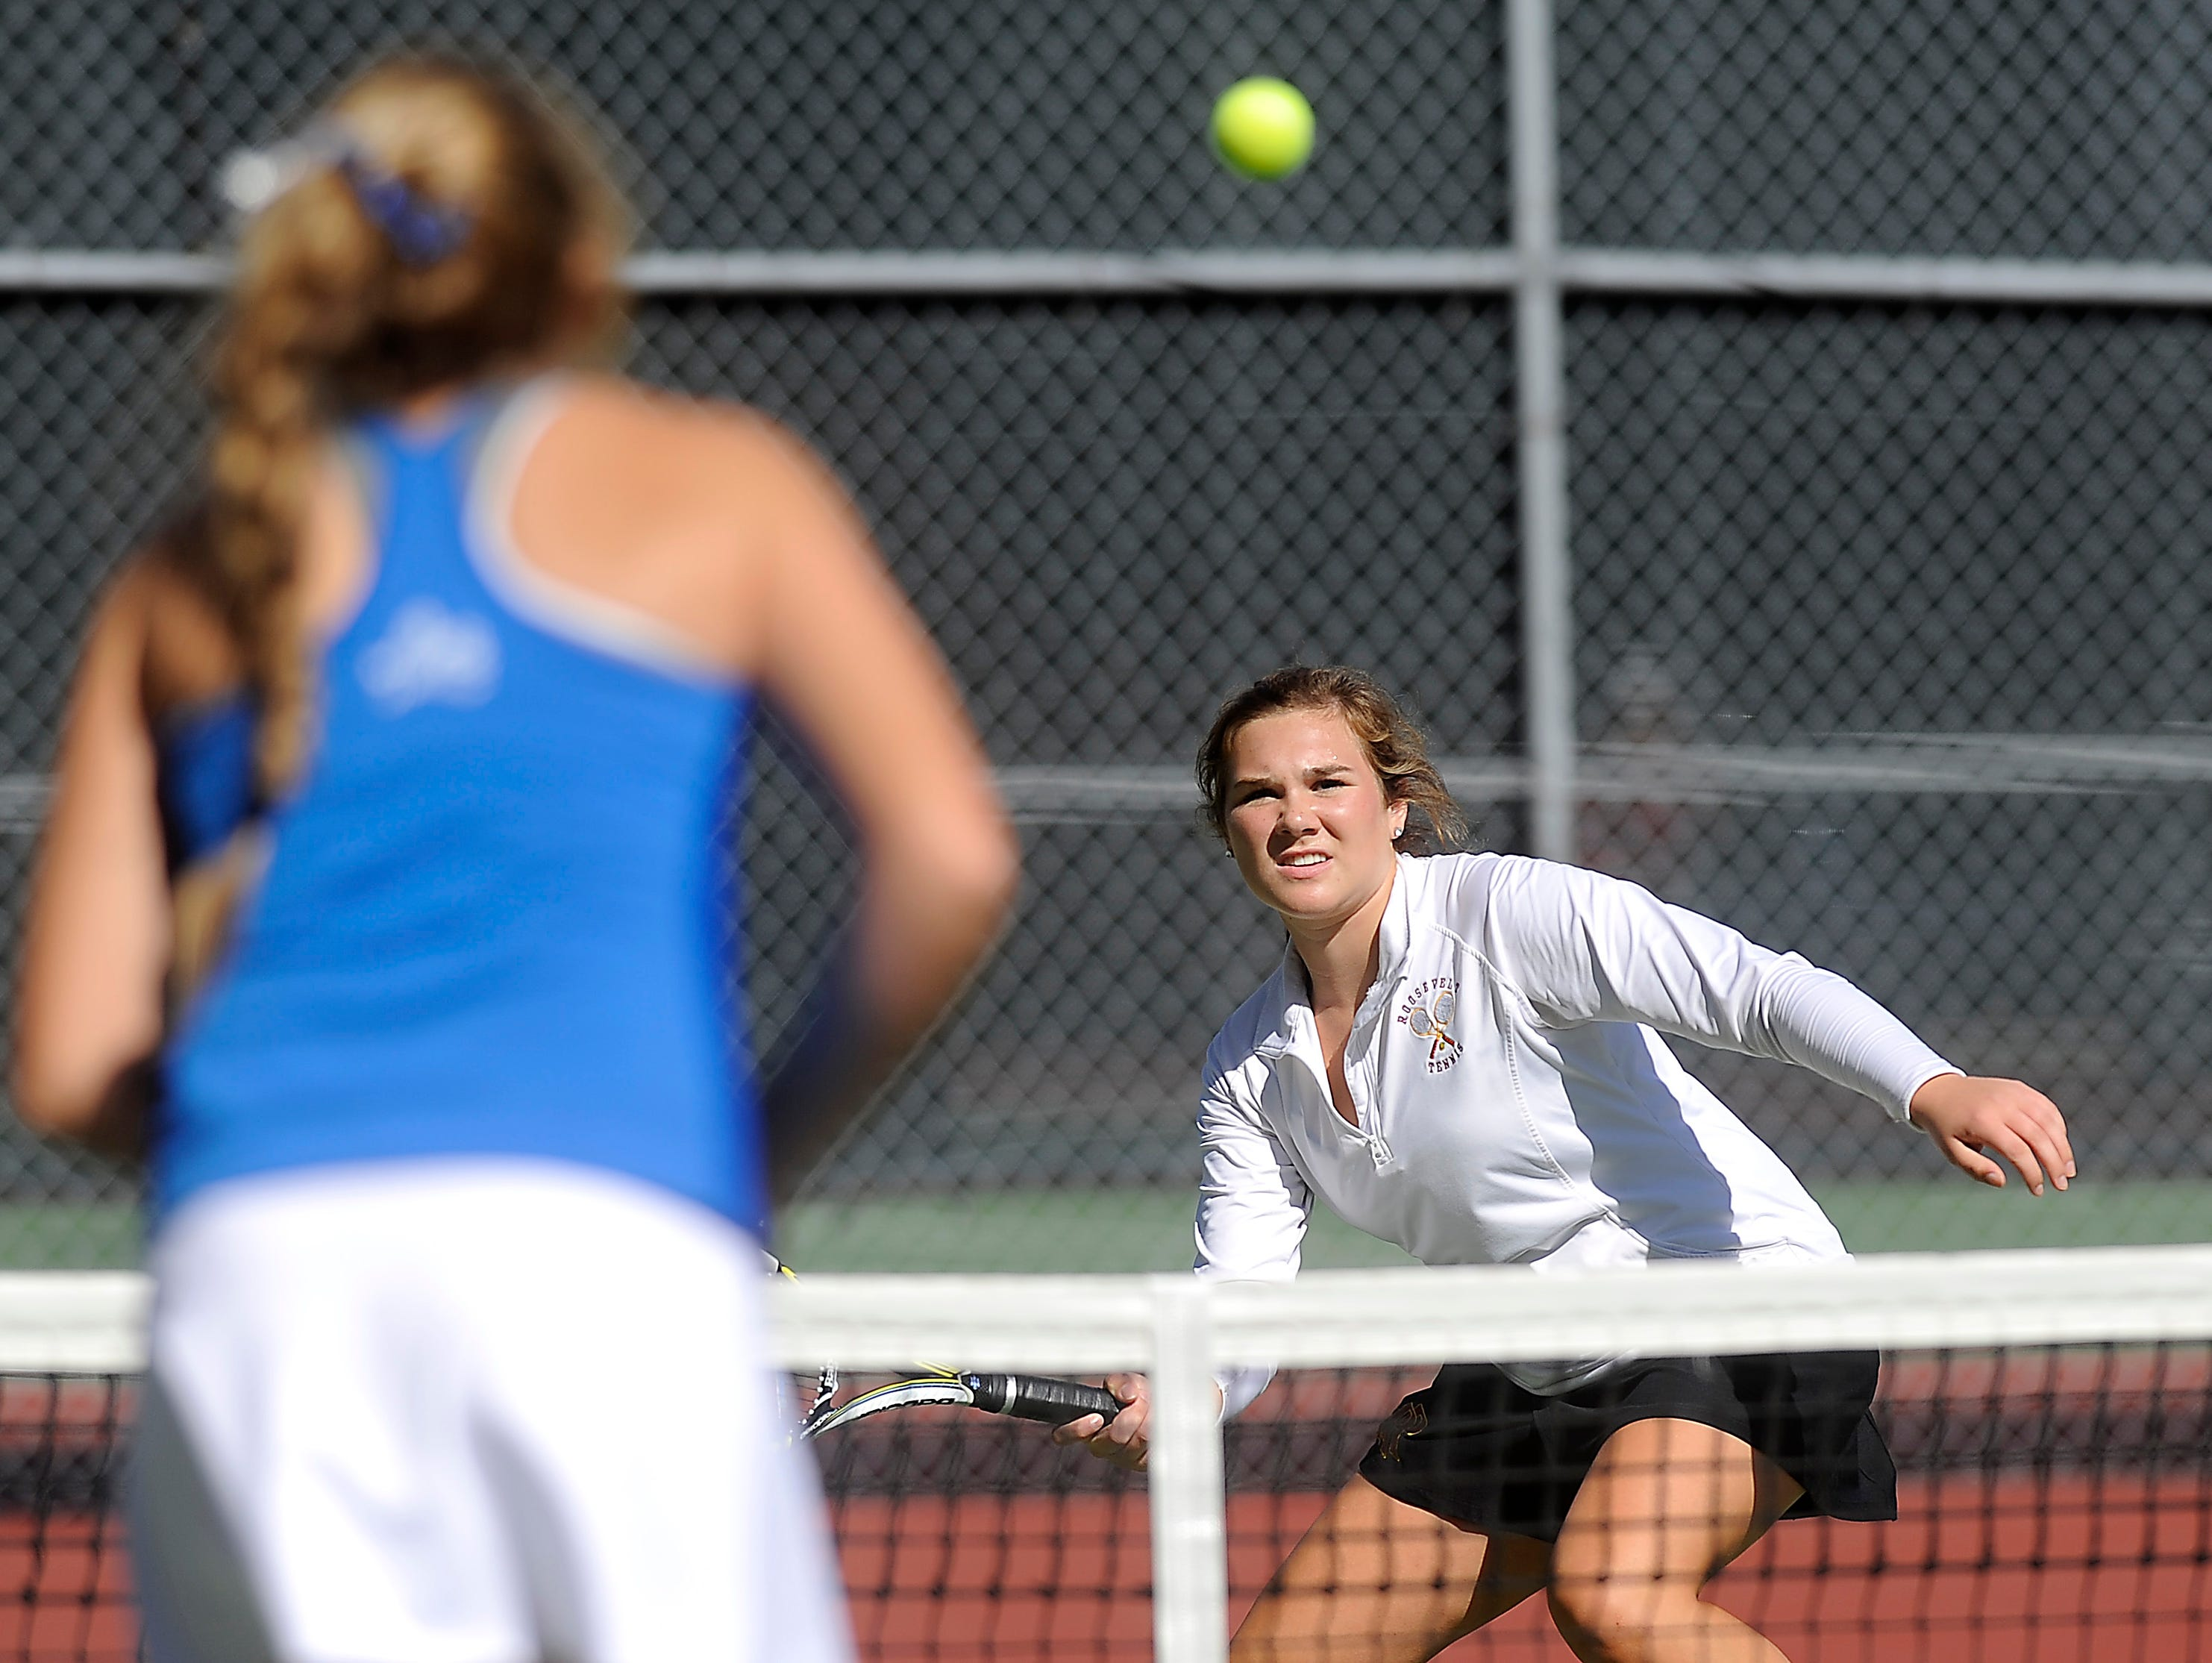 Roosevelt's Morgan Johnson returns the ball to Rapid City Stevens' Tianna Duba during doubles third round championship of the SD high school girls state tournament at McKennan Park in Sioux Falls, SD; Friday, Oct. 9, 2015.